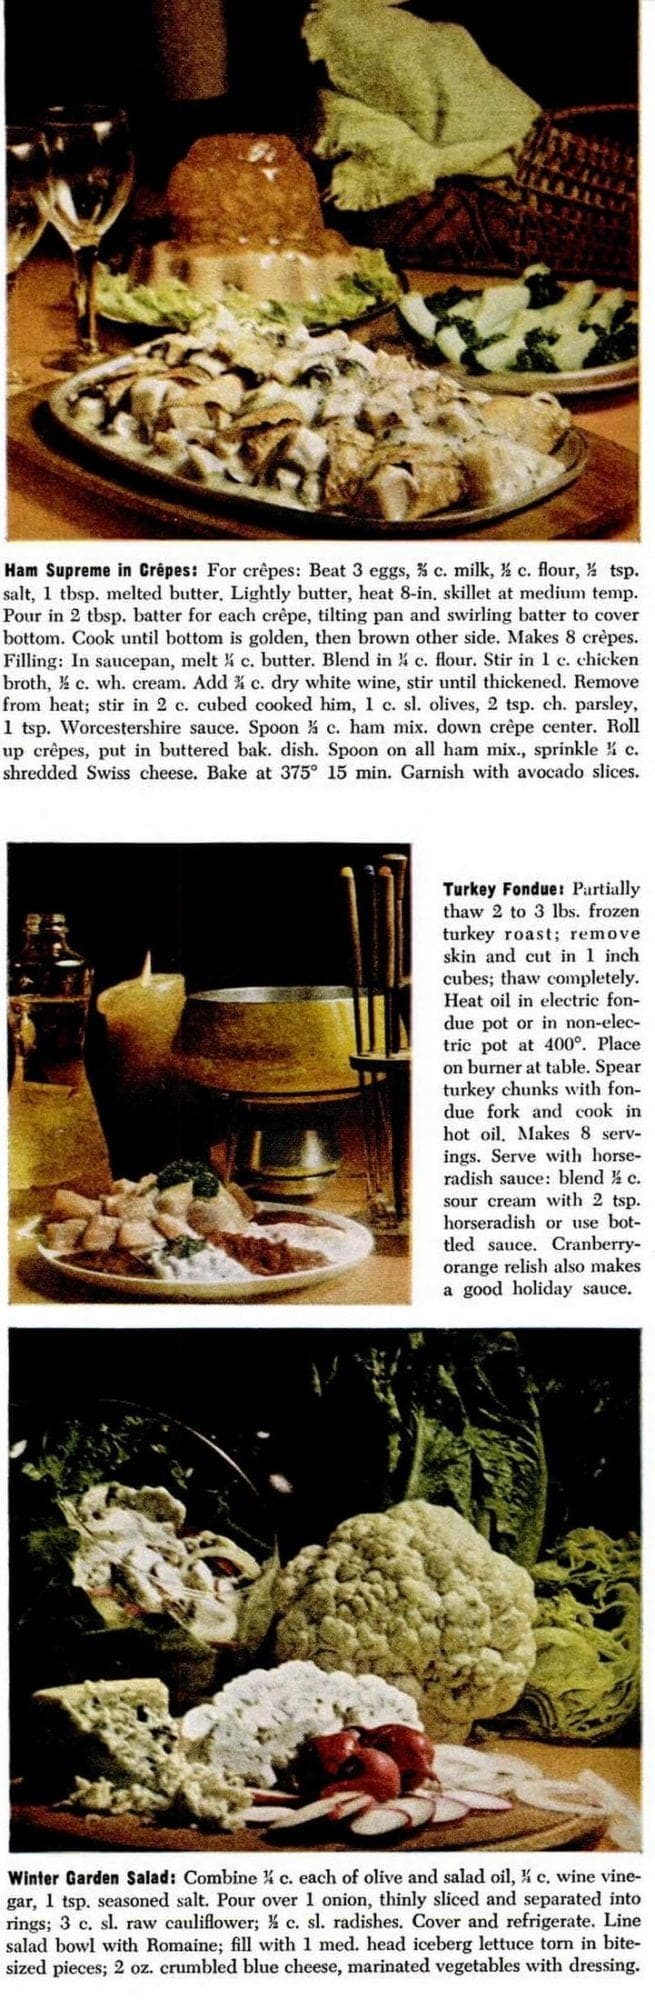 Thanksgiving recipes from 1974